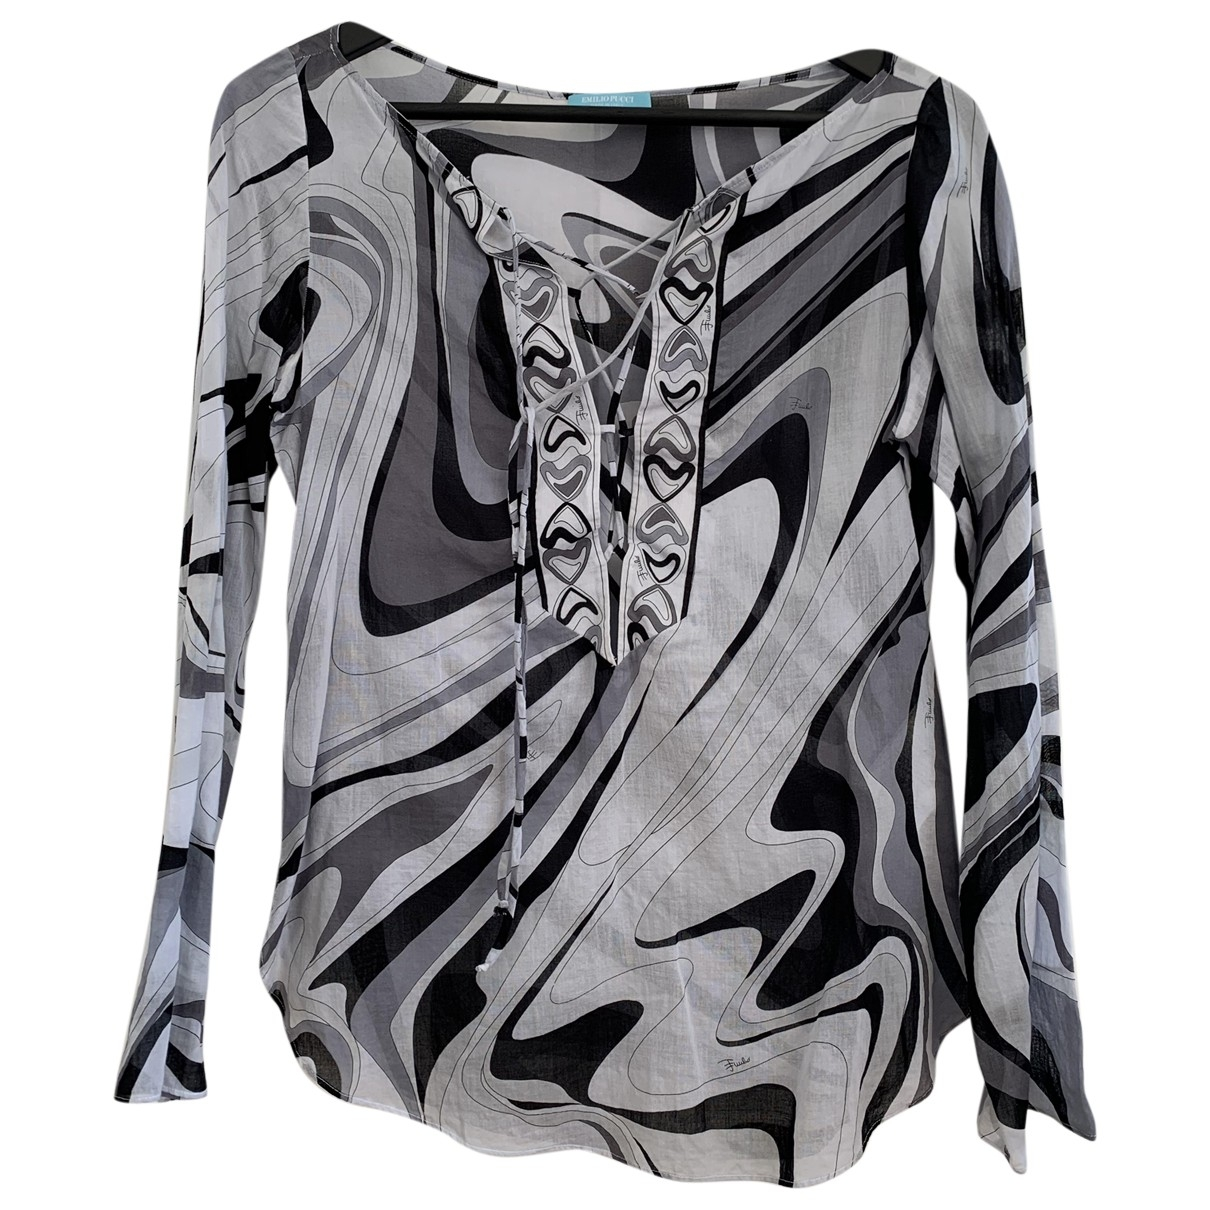 Emilio Pucci \N Grey Cotton  top for Women 38 IT